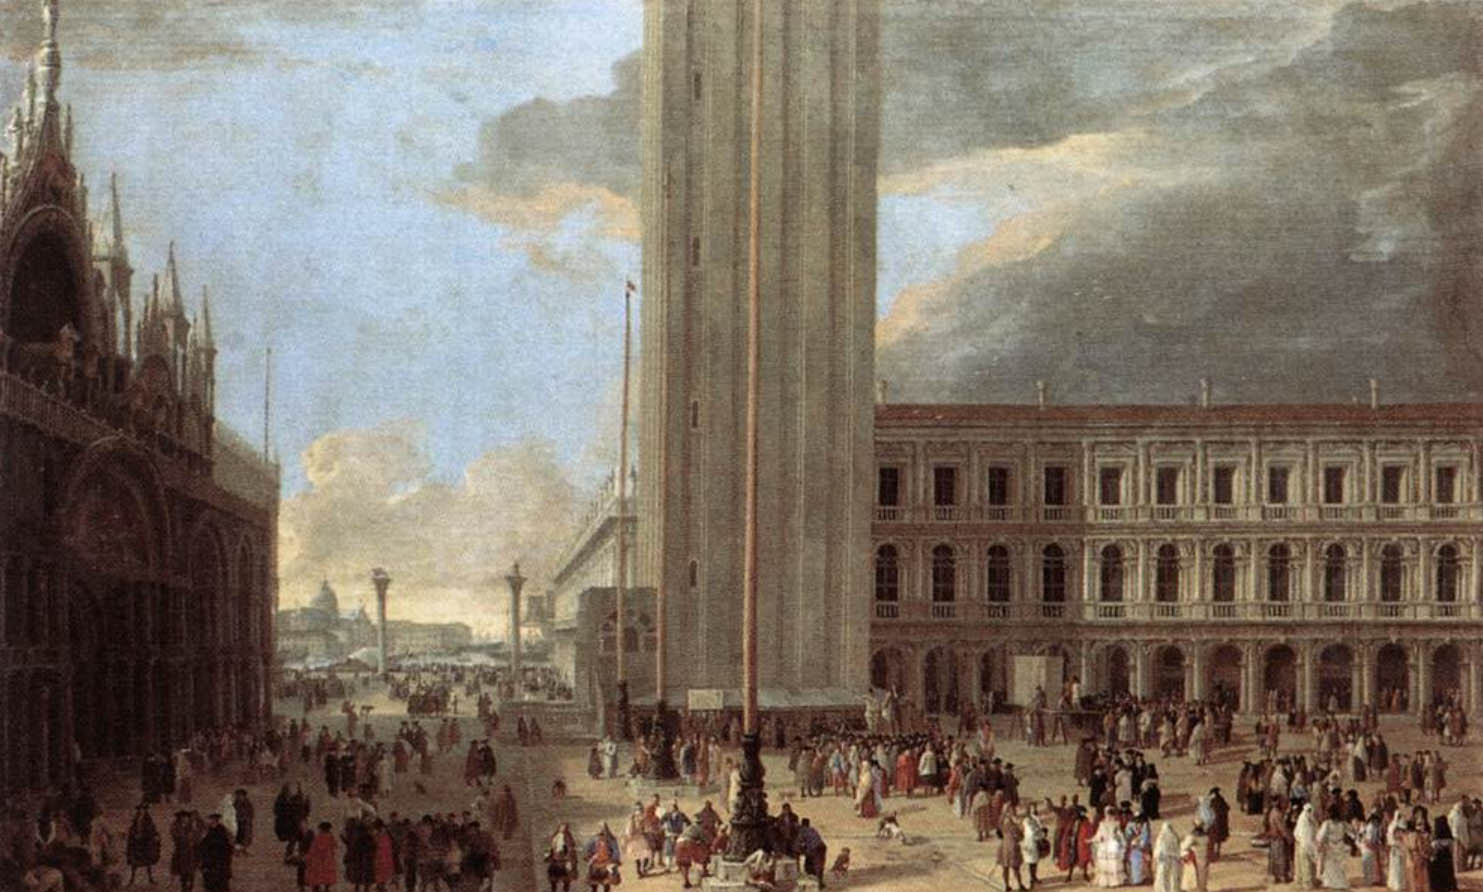 Luca Carlevarijs - Piazza San Marco with Jugglers - Italy private excursions